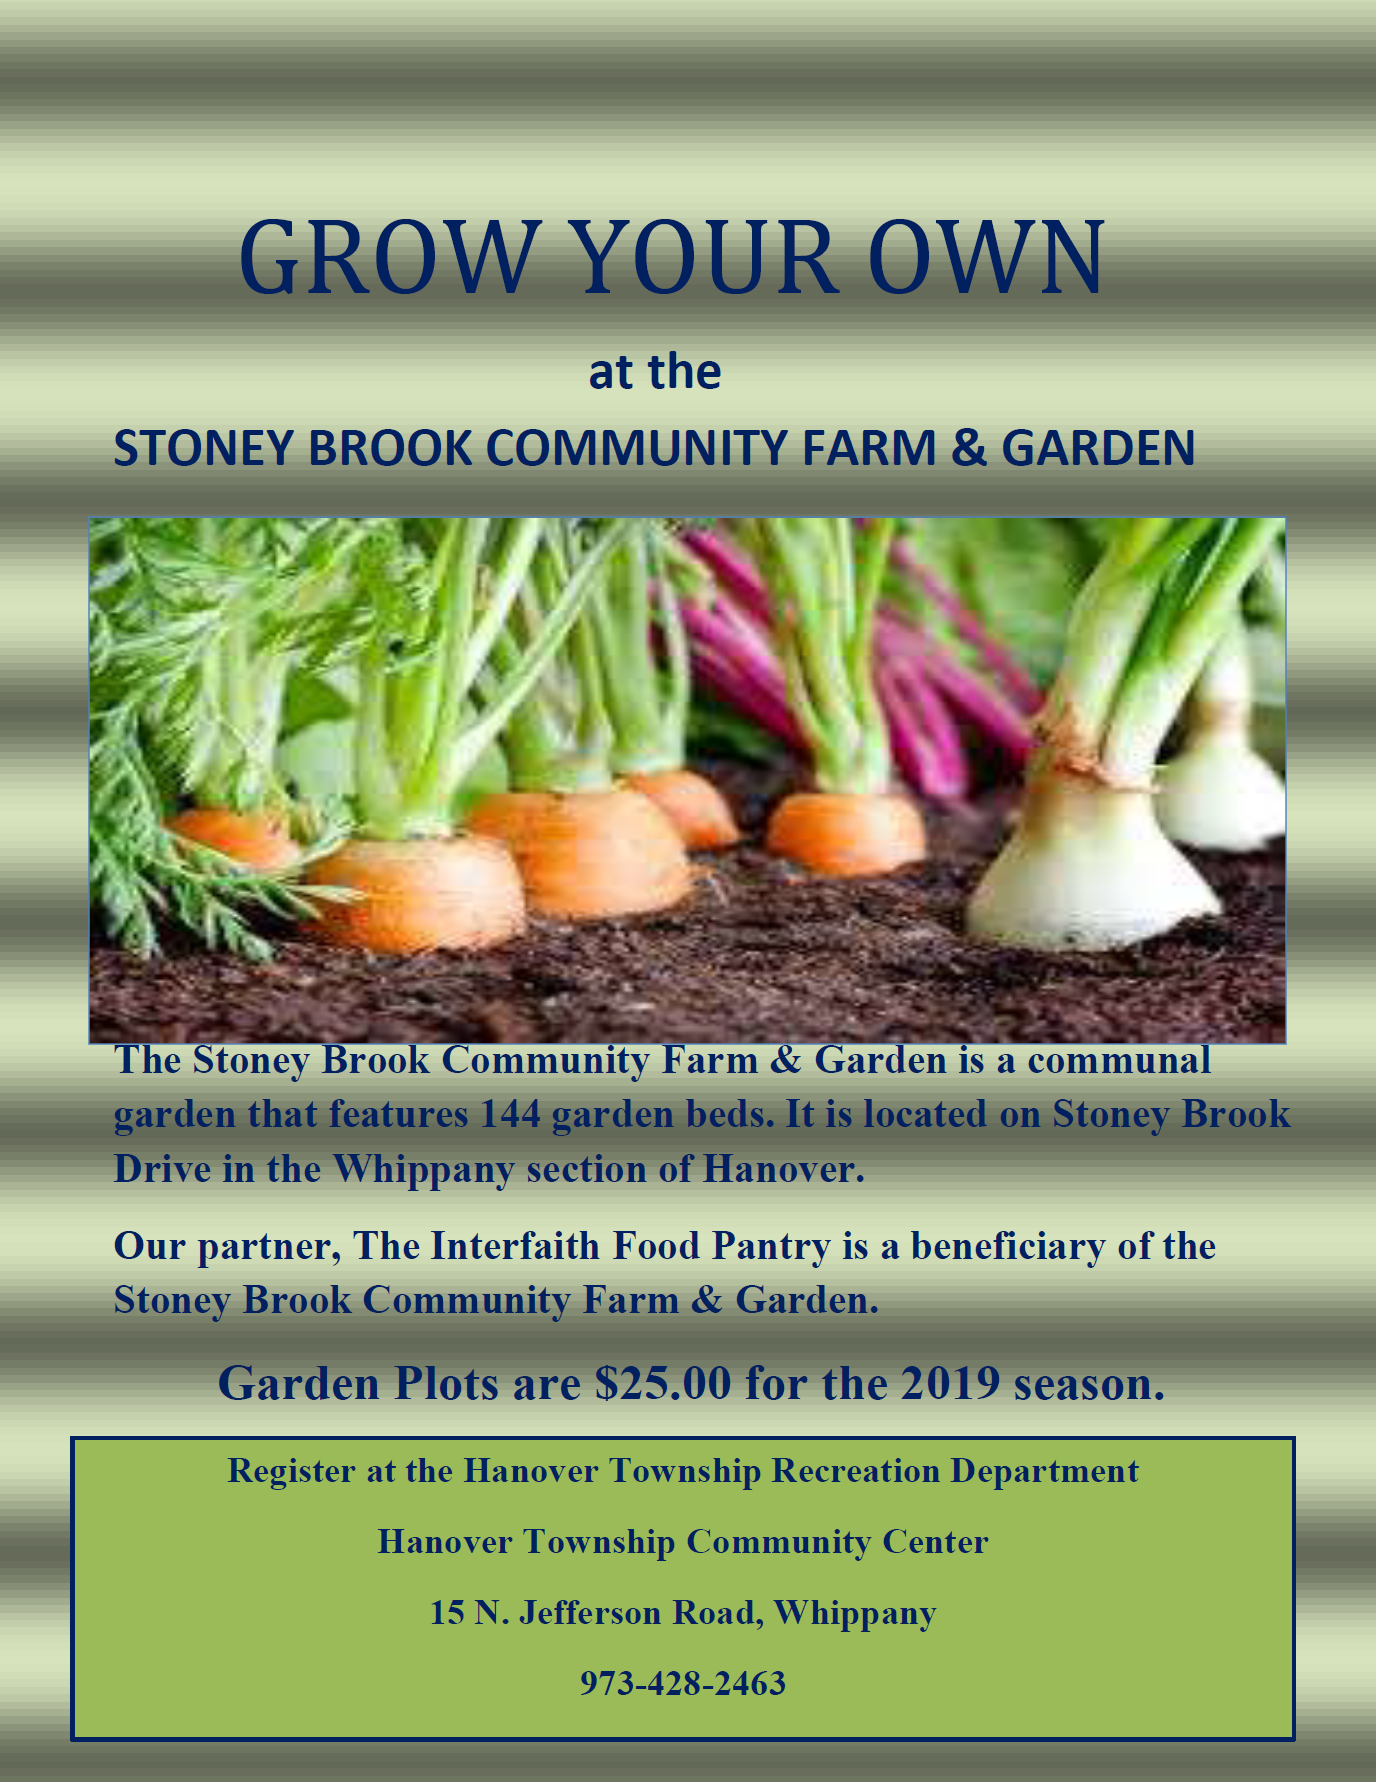 Stoney Brook Community Farm & Garden 2019